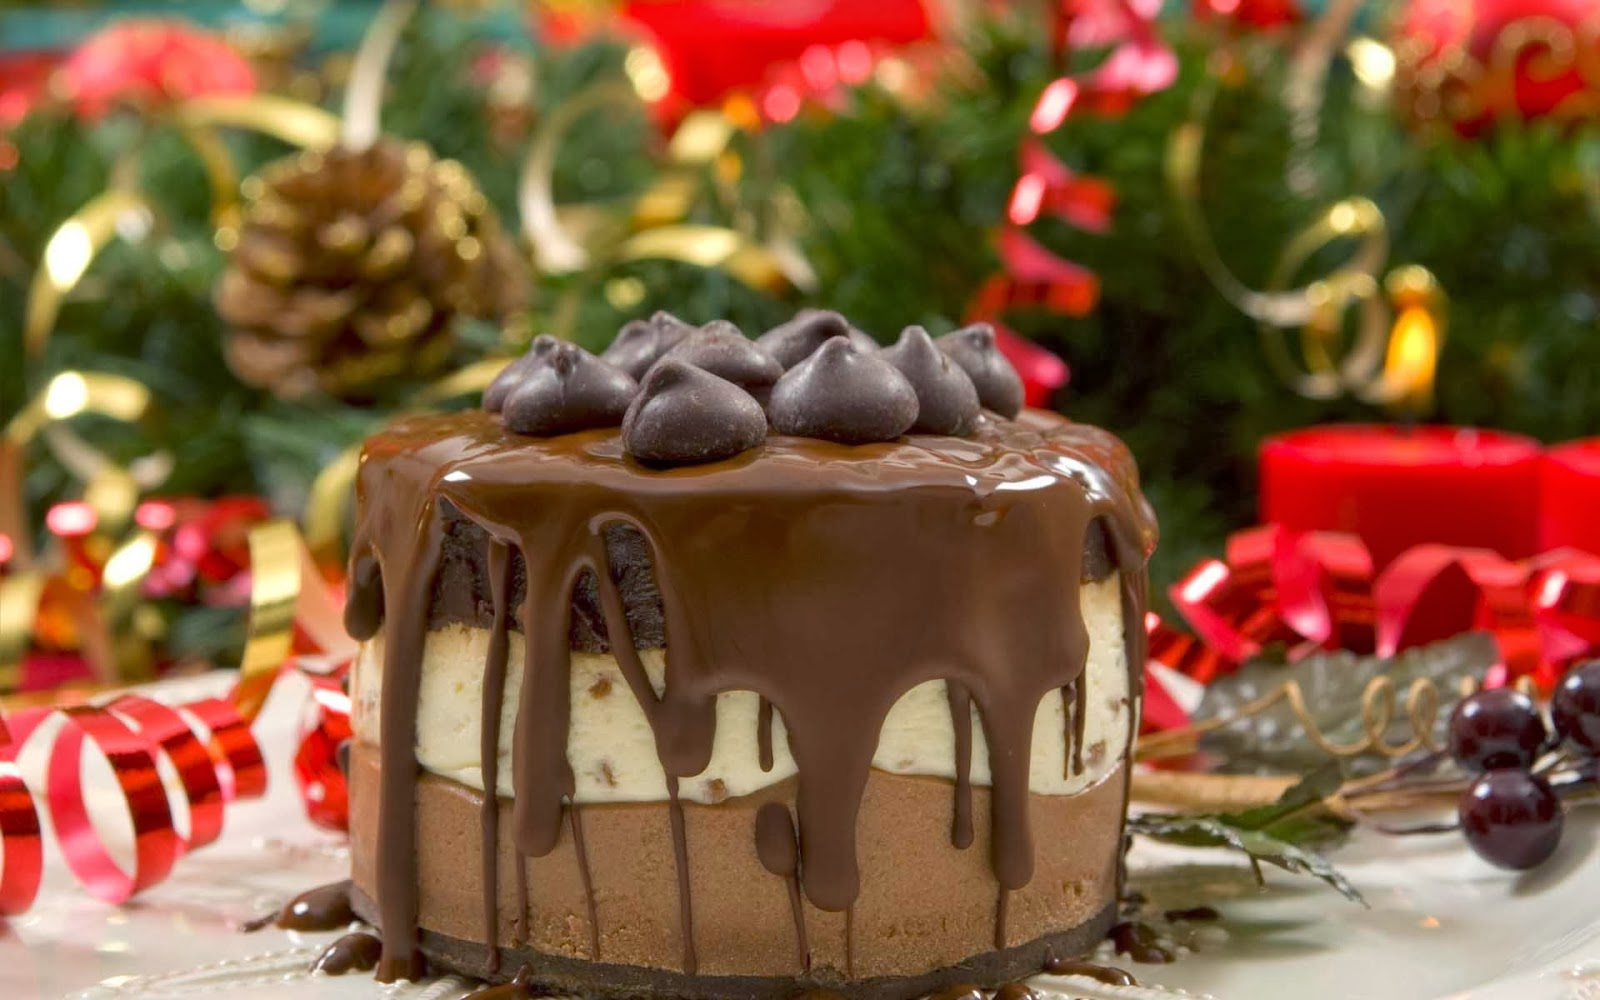 Chocolate Cake Hd Wallpapers Free Download Unique Wallpapers